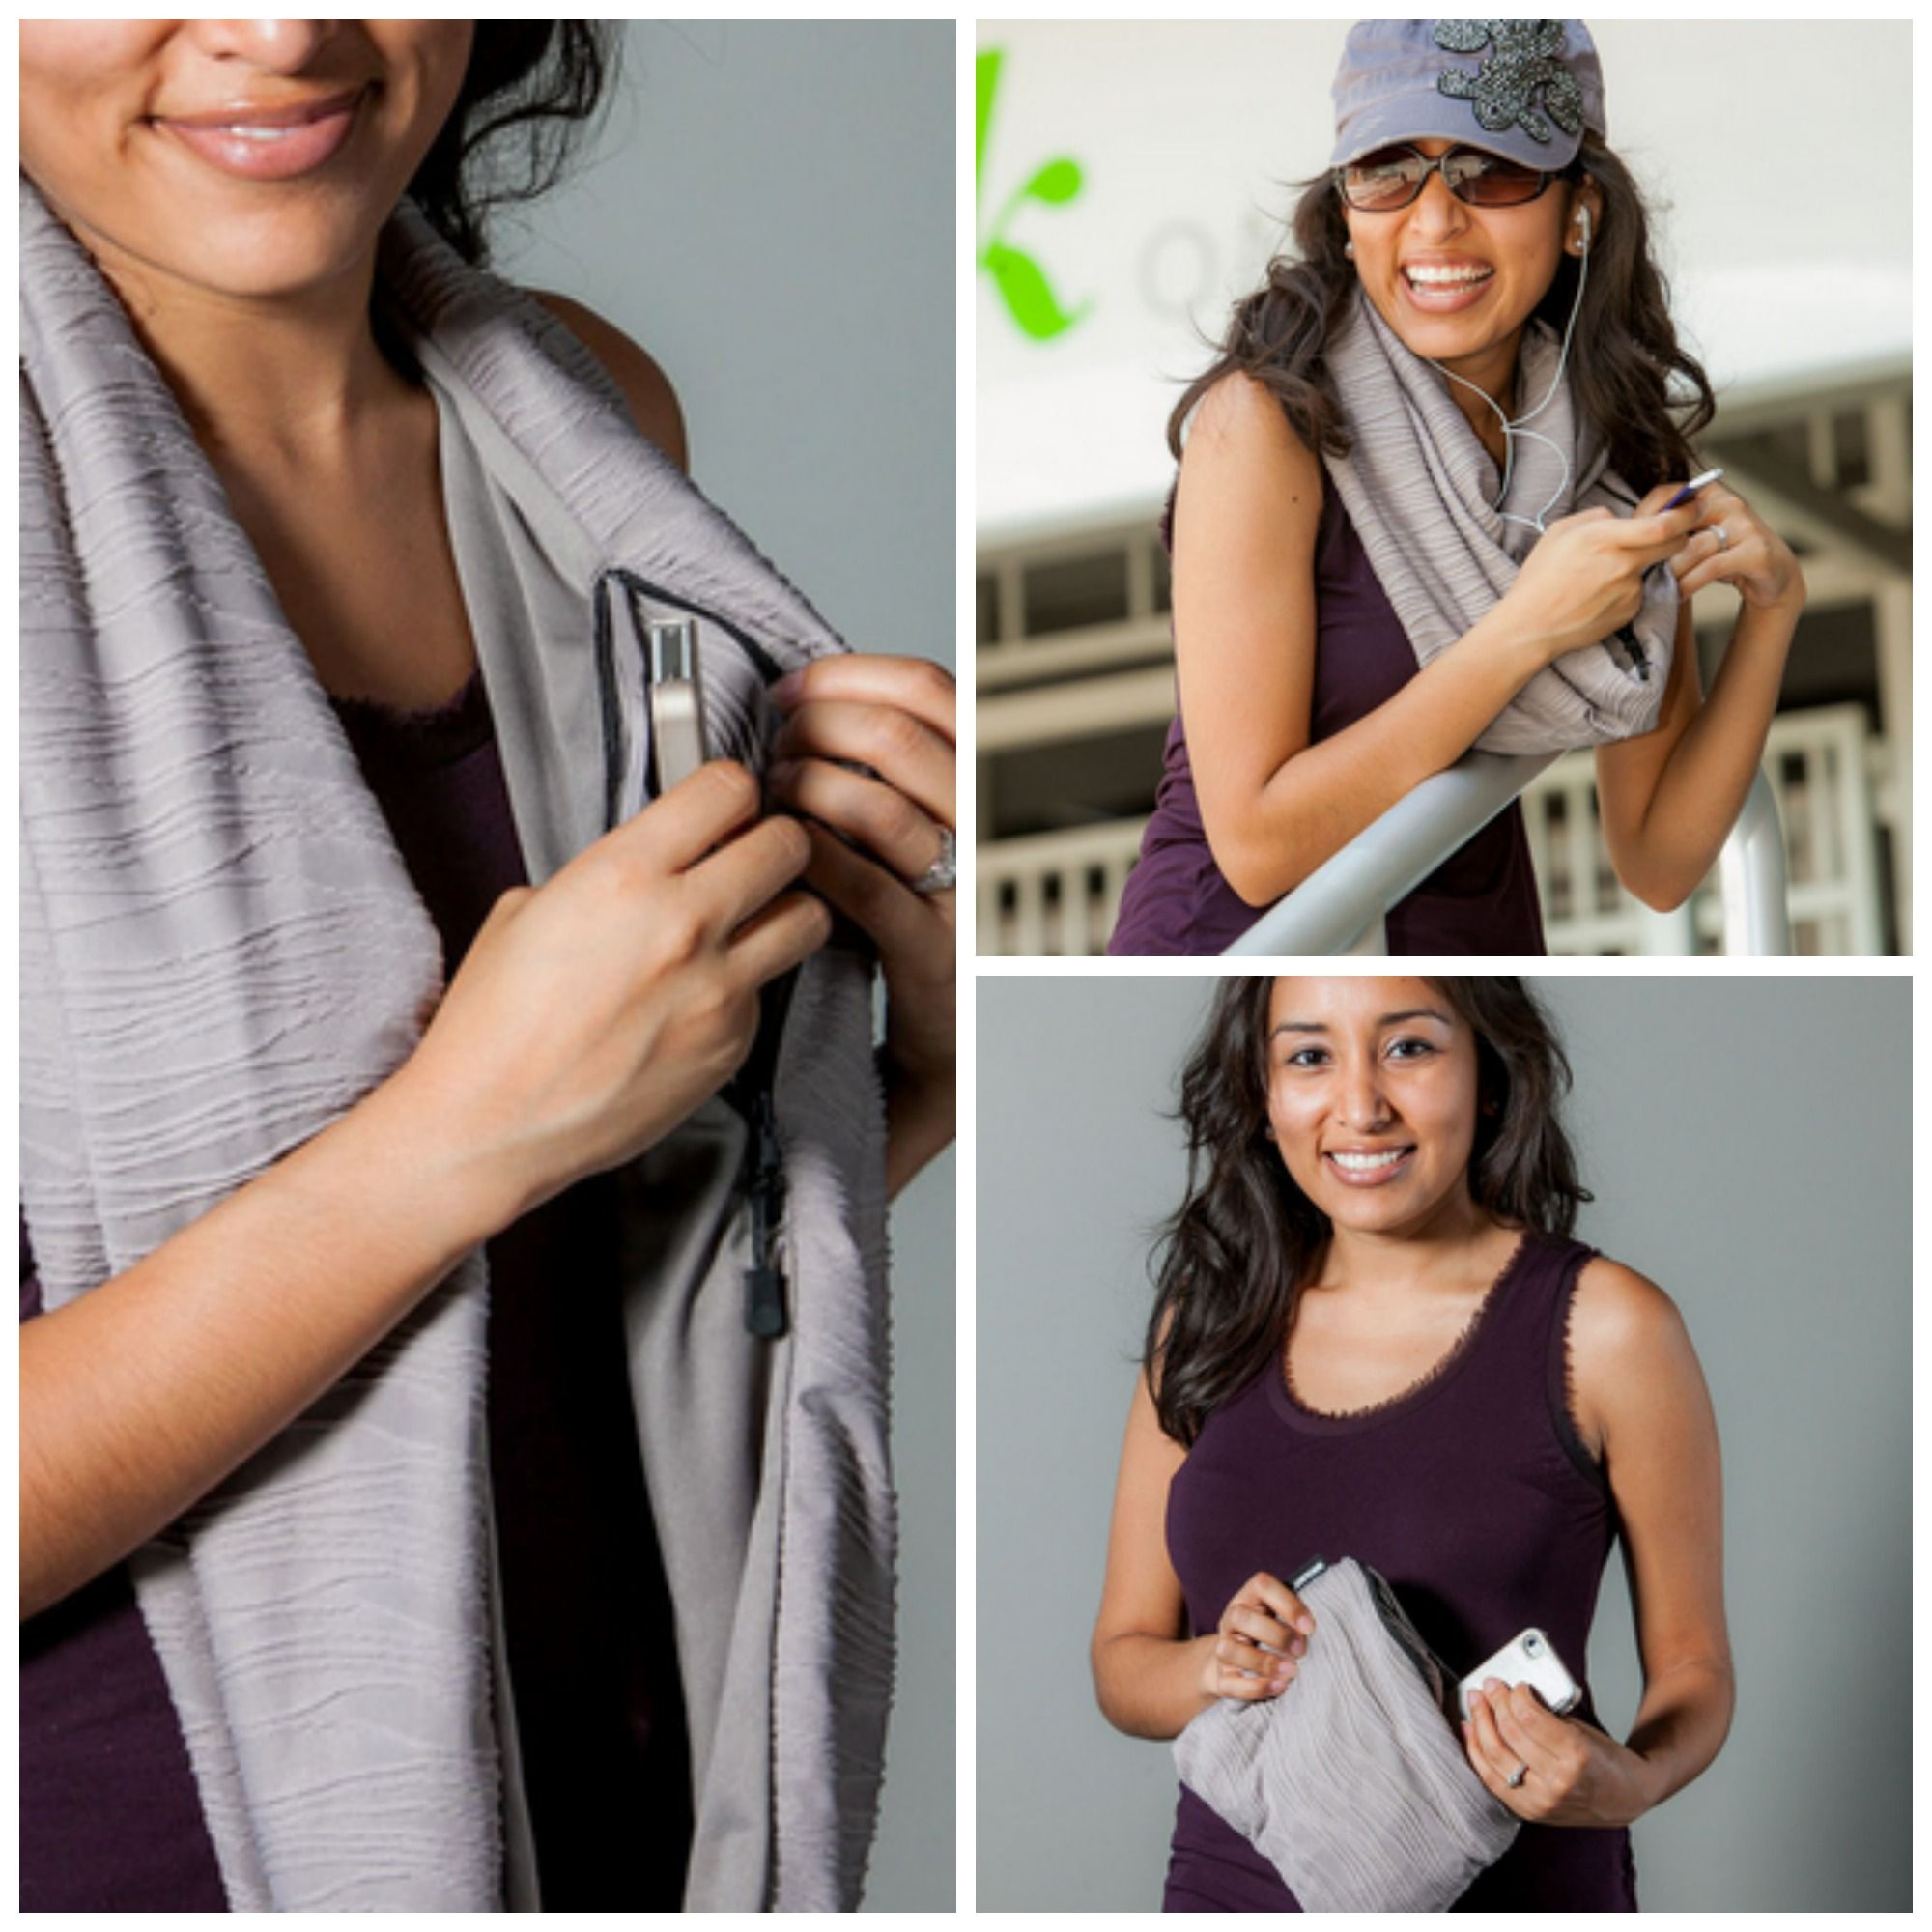 SholdIT Travel Scarf that turns into a Clutch >>> OMG I WANT!!!! This is an amazing idea - a scarf with a secret pocket that doubles as a clutch!